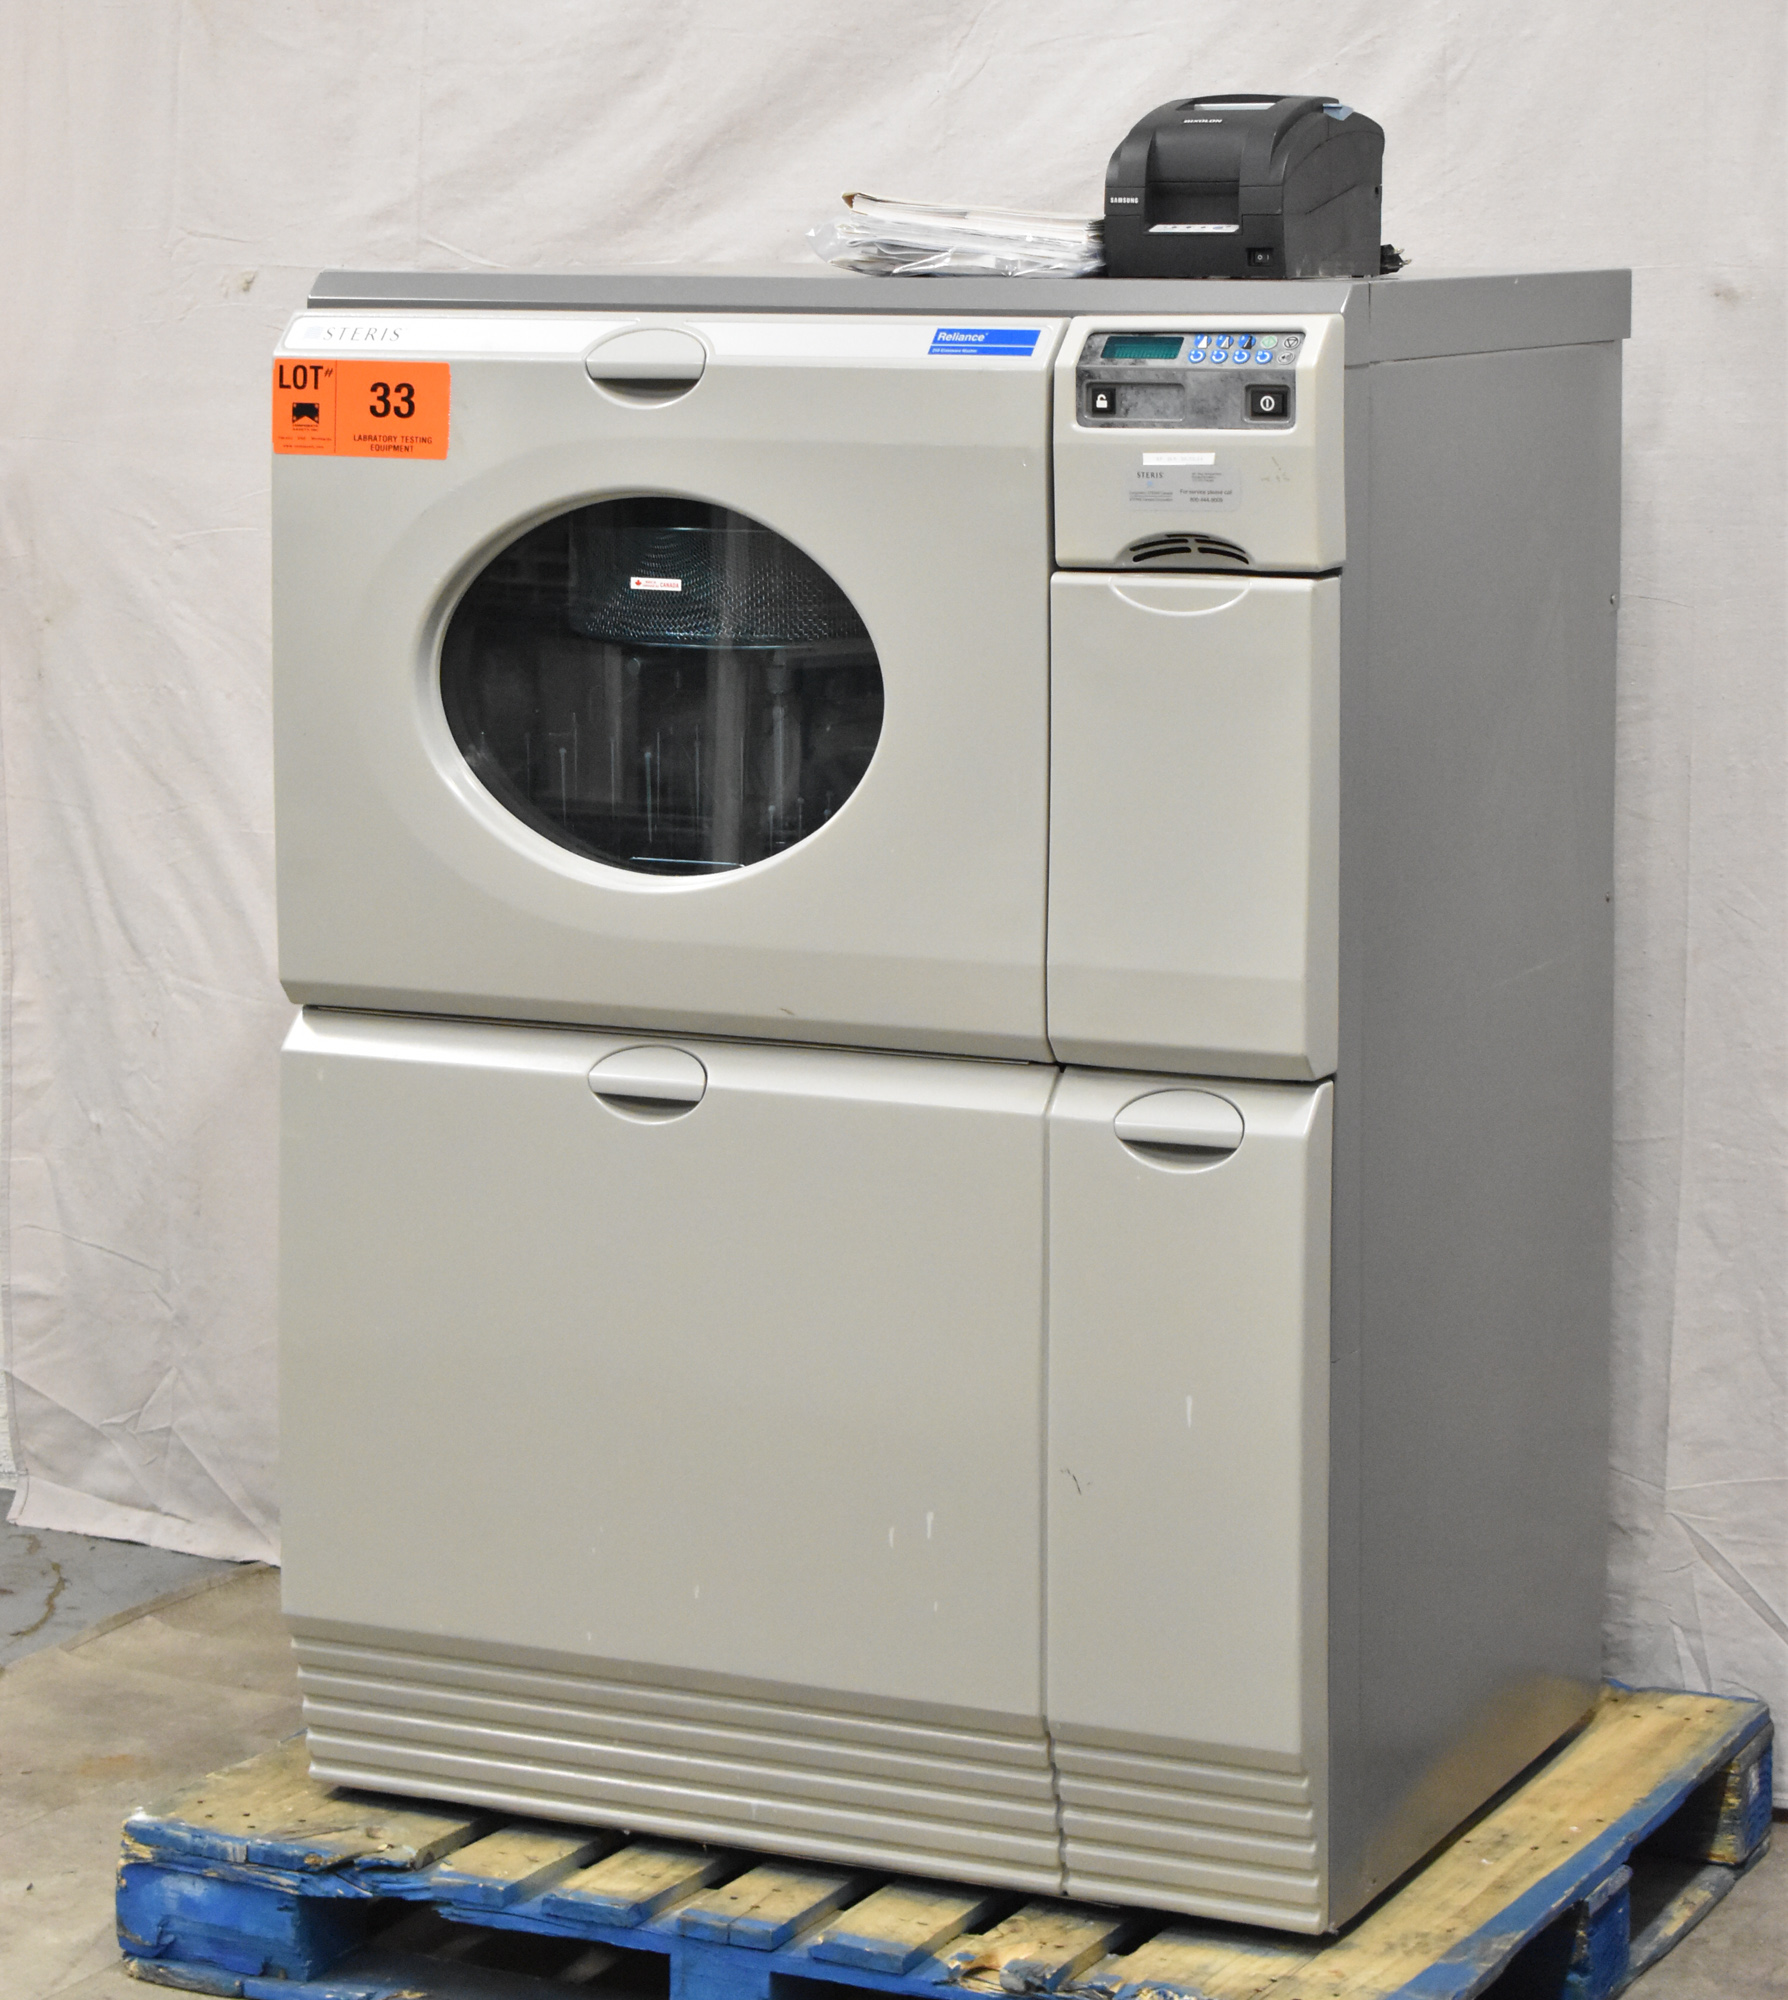 STERIS RELIANCE 250 ULTRA WASH PLUS LABORATORY GLASSWARE WASHER WITH DIGITAL TOUCH SCREEN CONTROL,